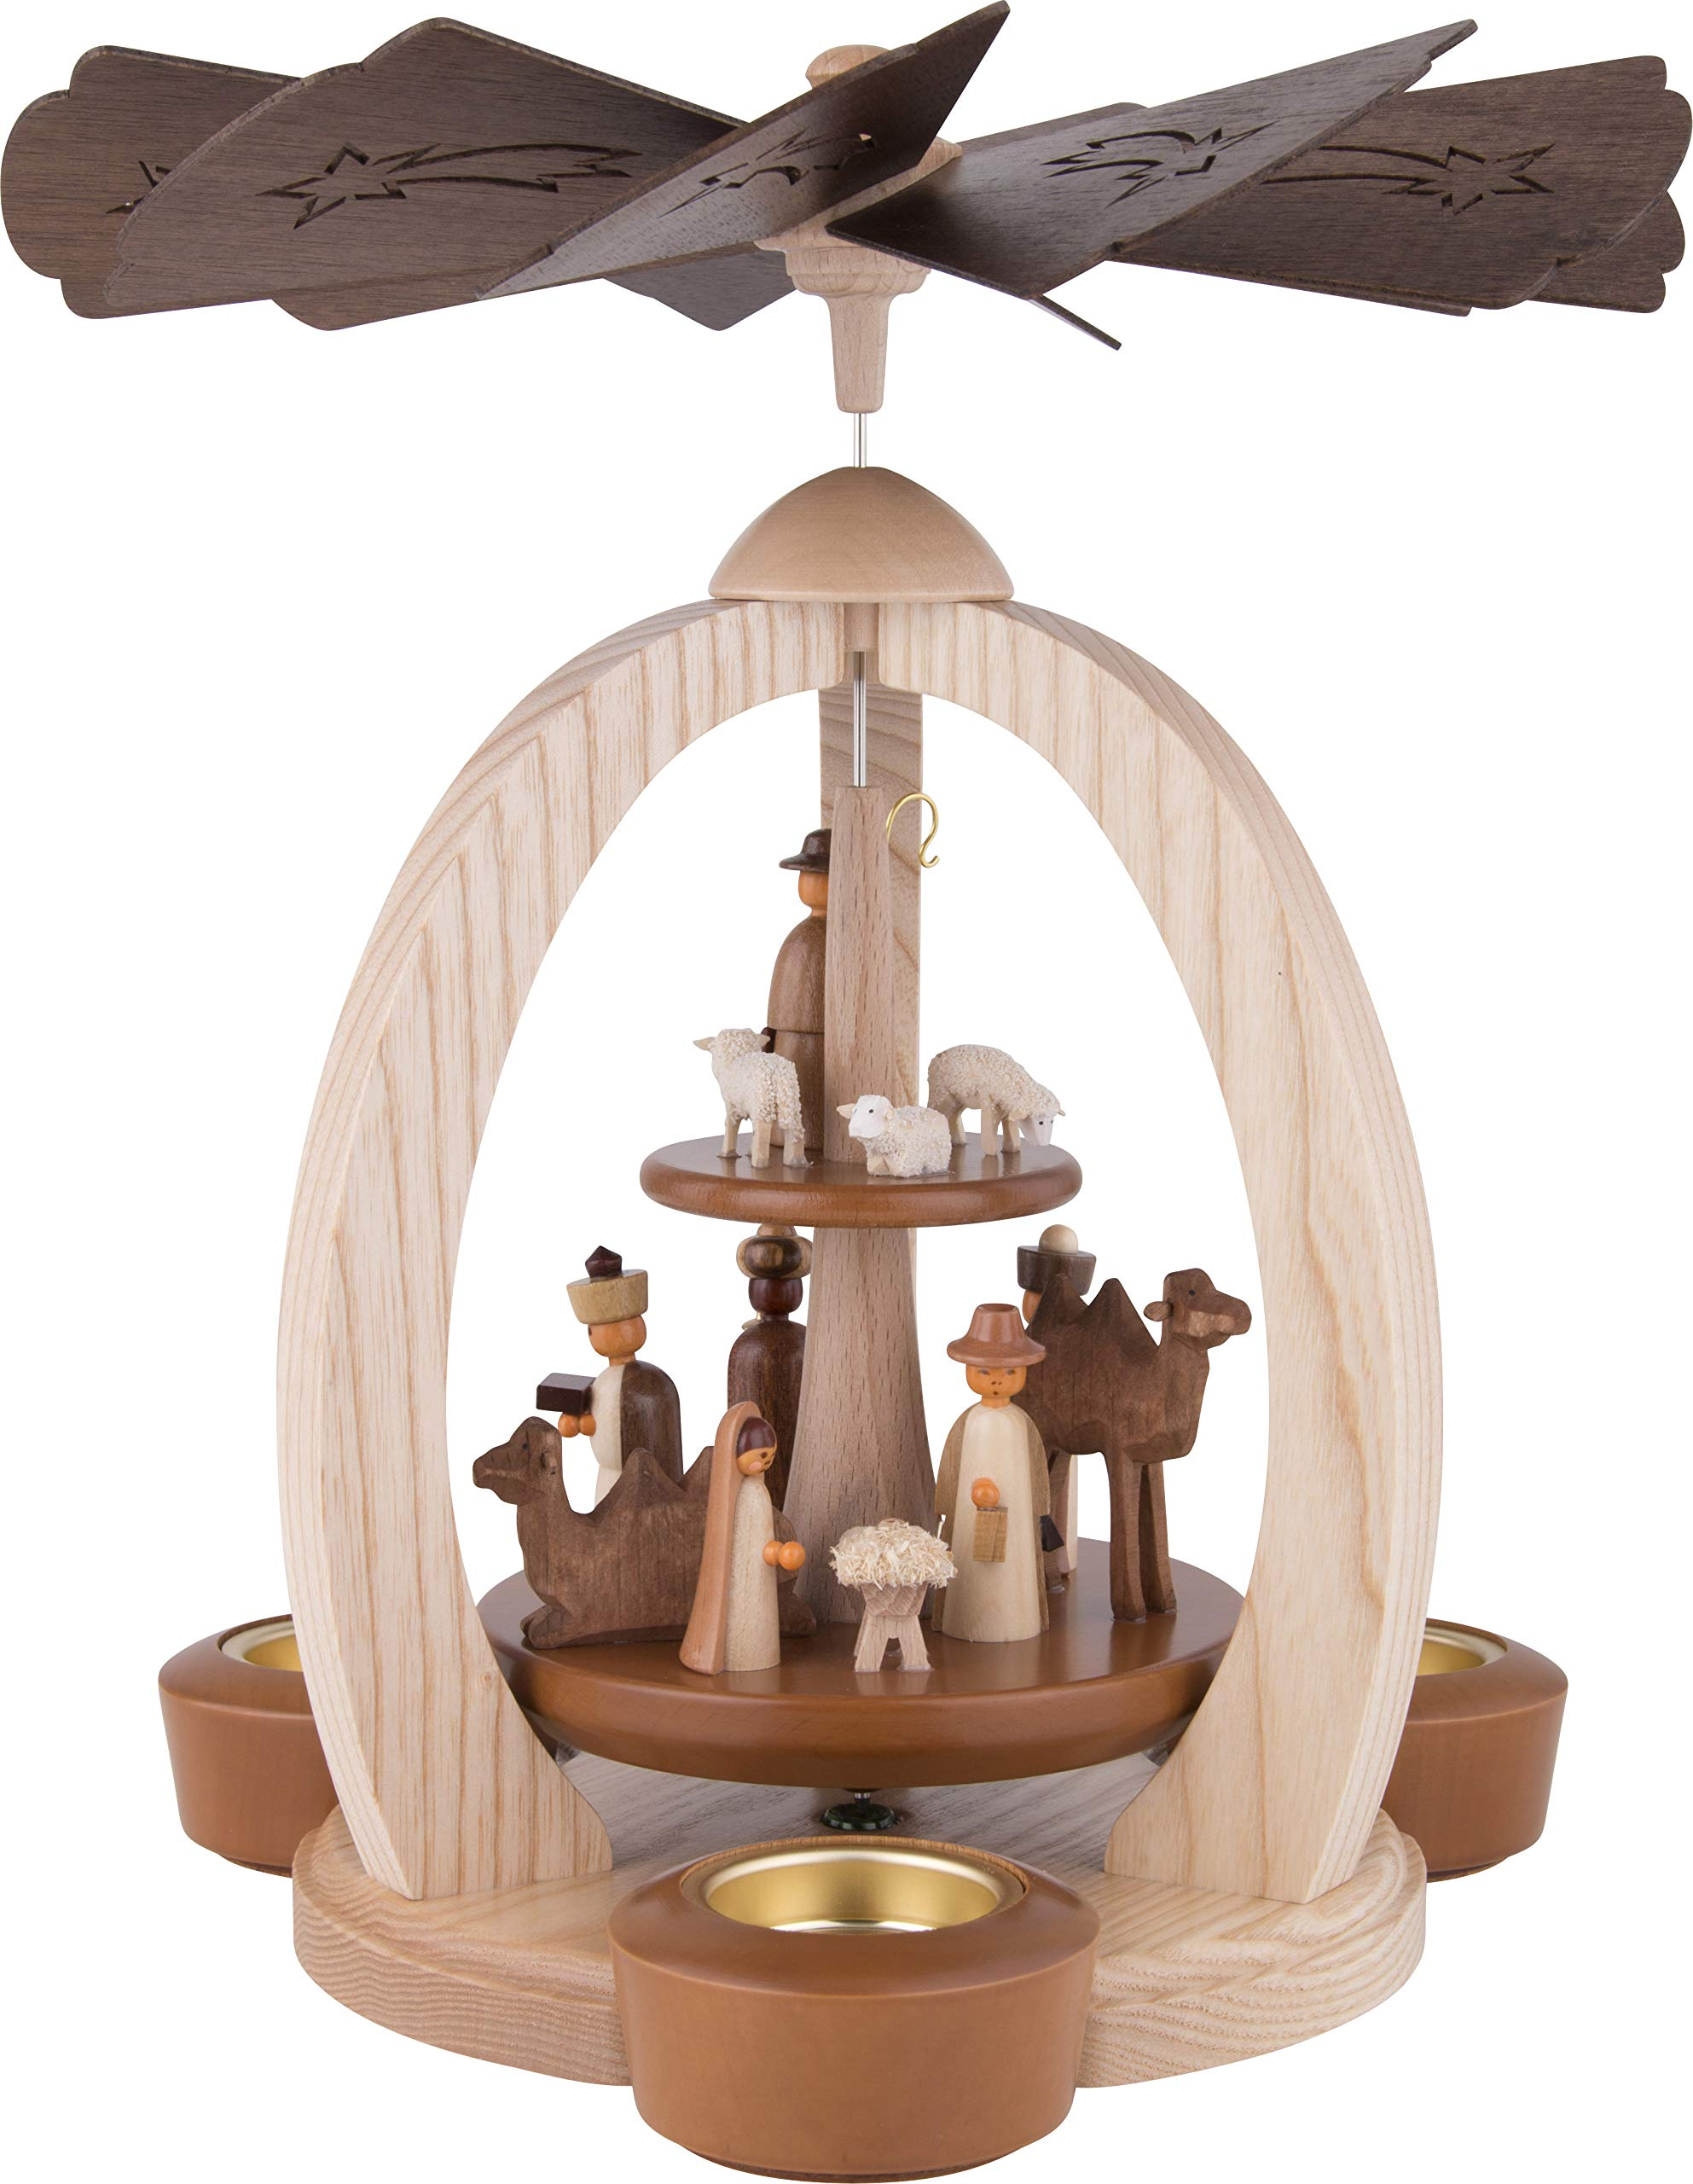 2-Tier Christmas Pyramid Nativity - Exclusive - 28 cm / 11 inch - Christmas Carousel - Erzgebirge Pyramid - 100% Made in Germany